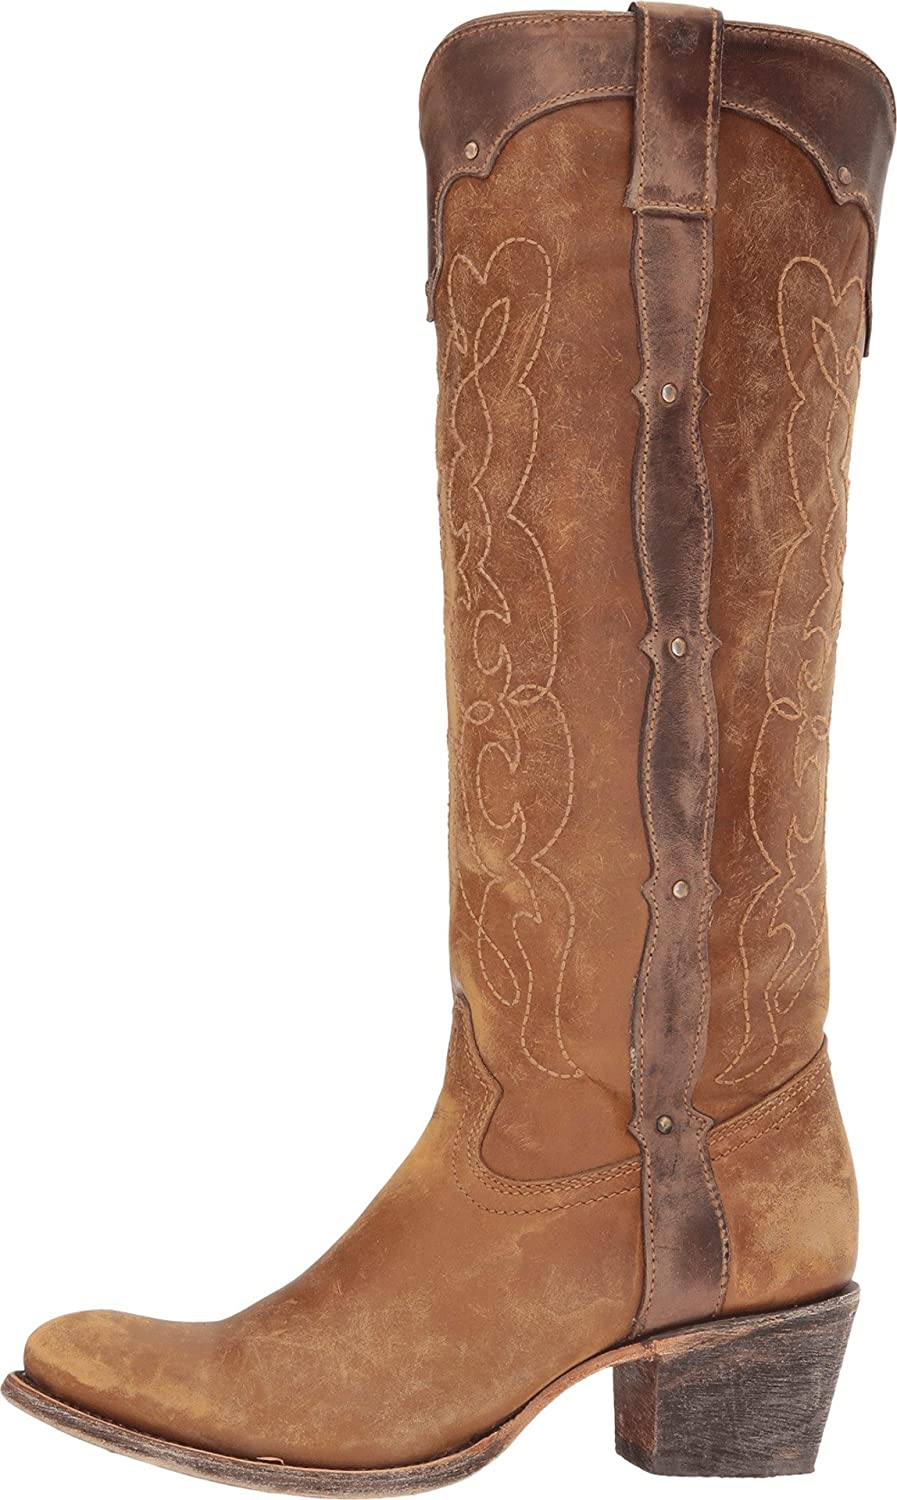 corral boots c1971